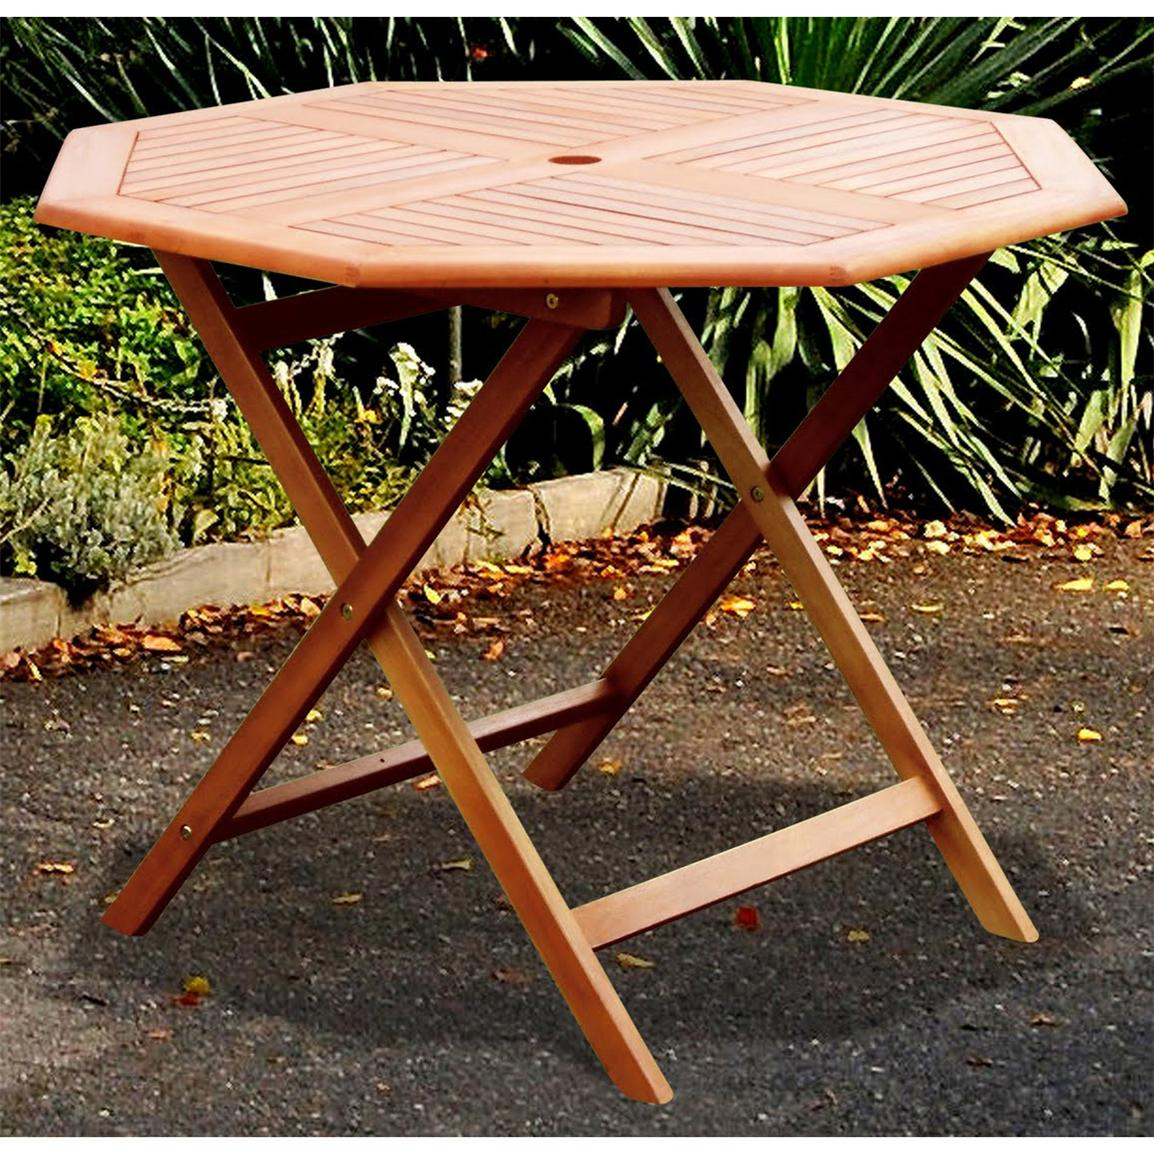 VIFAH® Octagonal Outdoor Wood Table